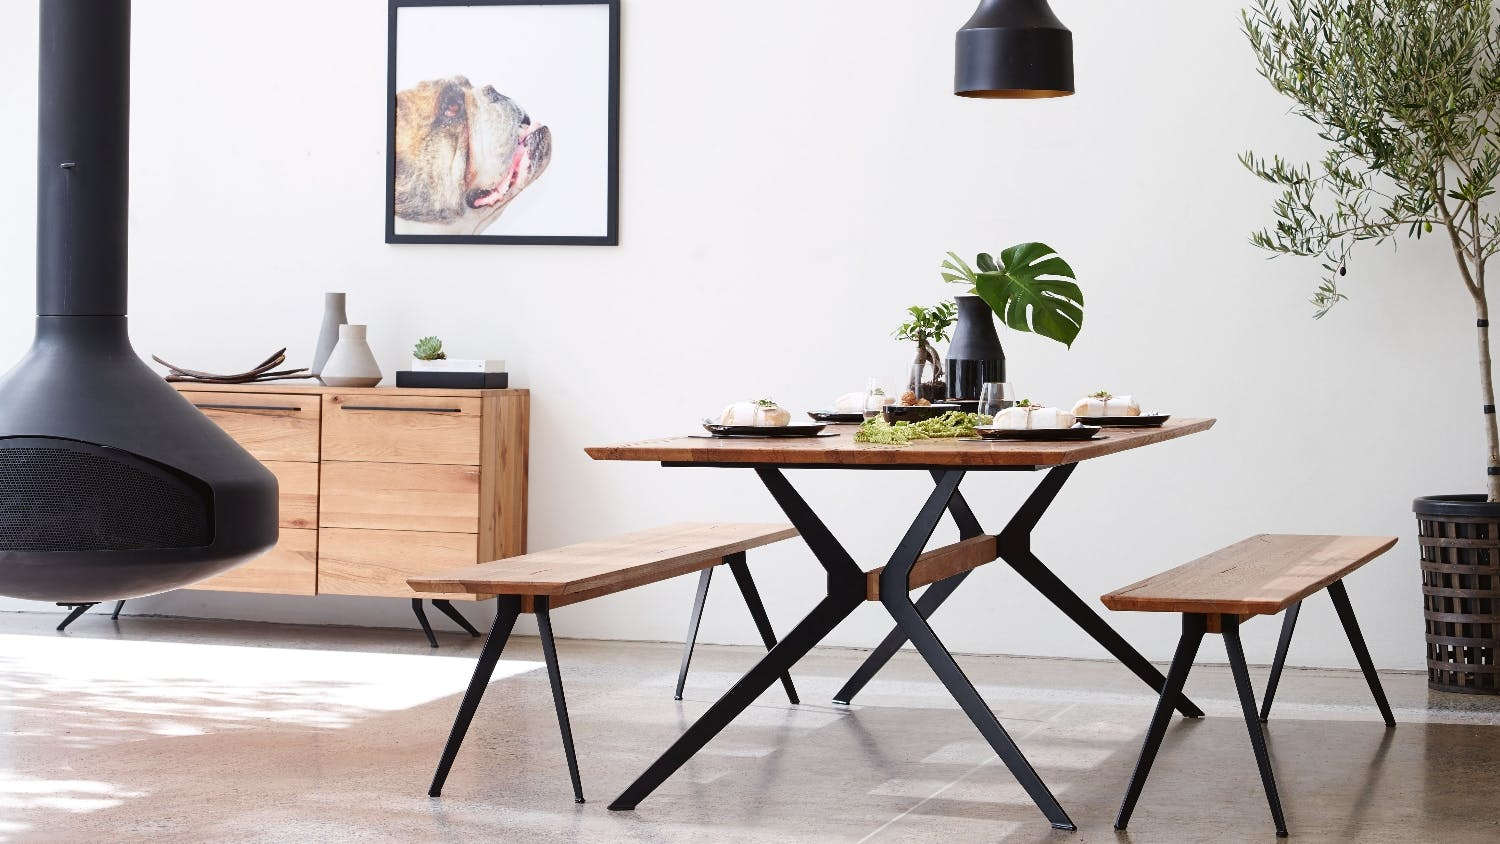 Kai dining table domayne for Table diner